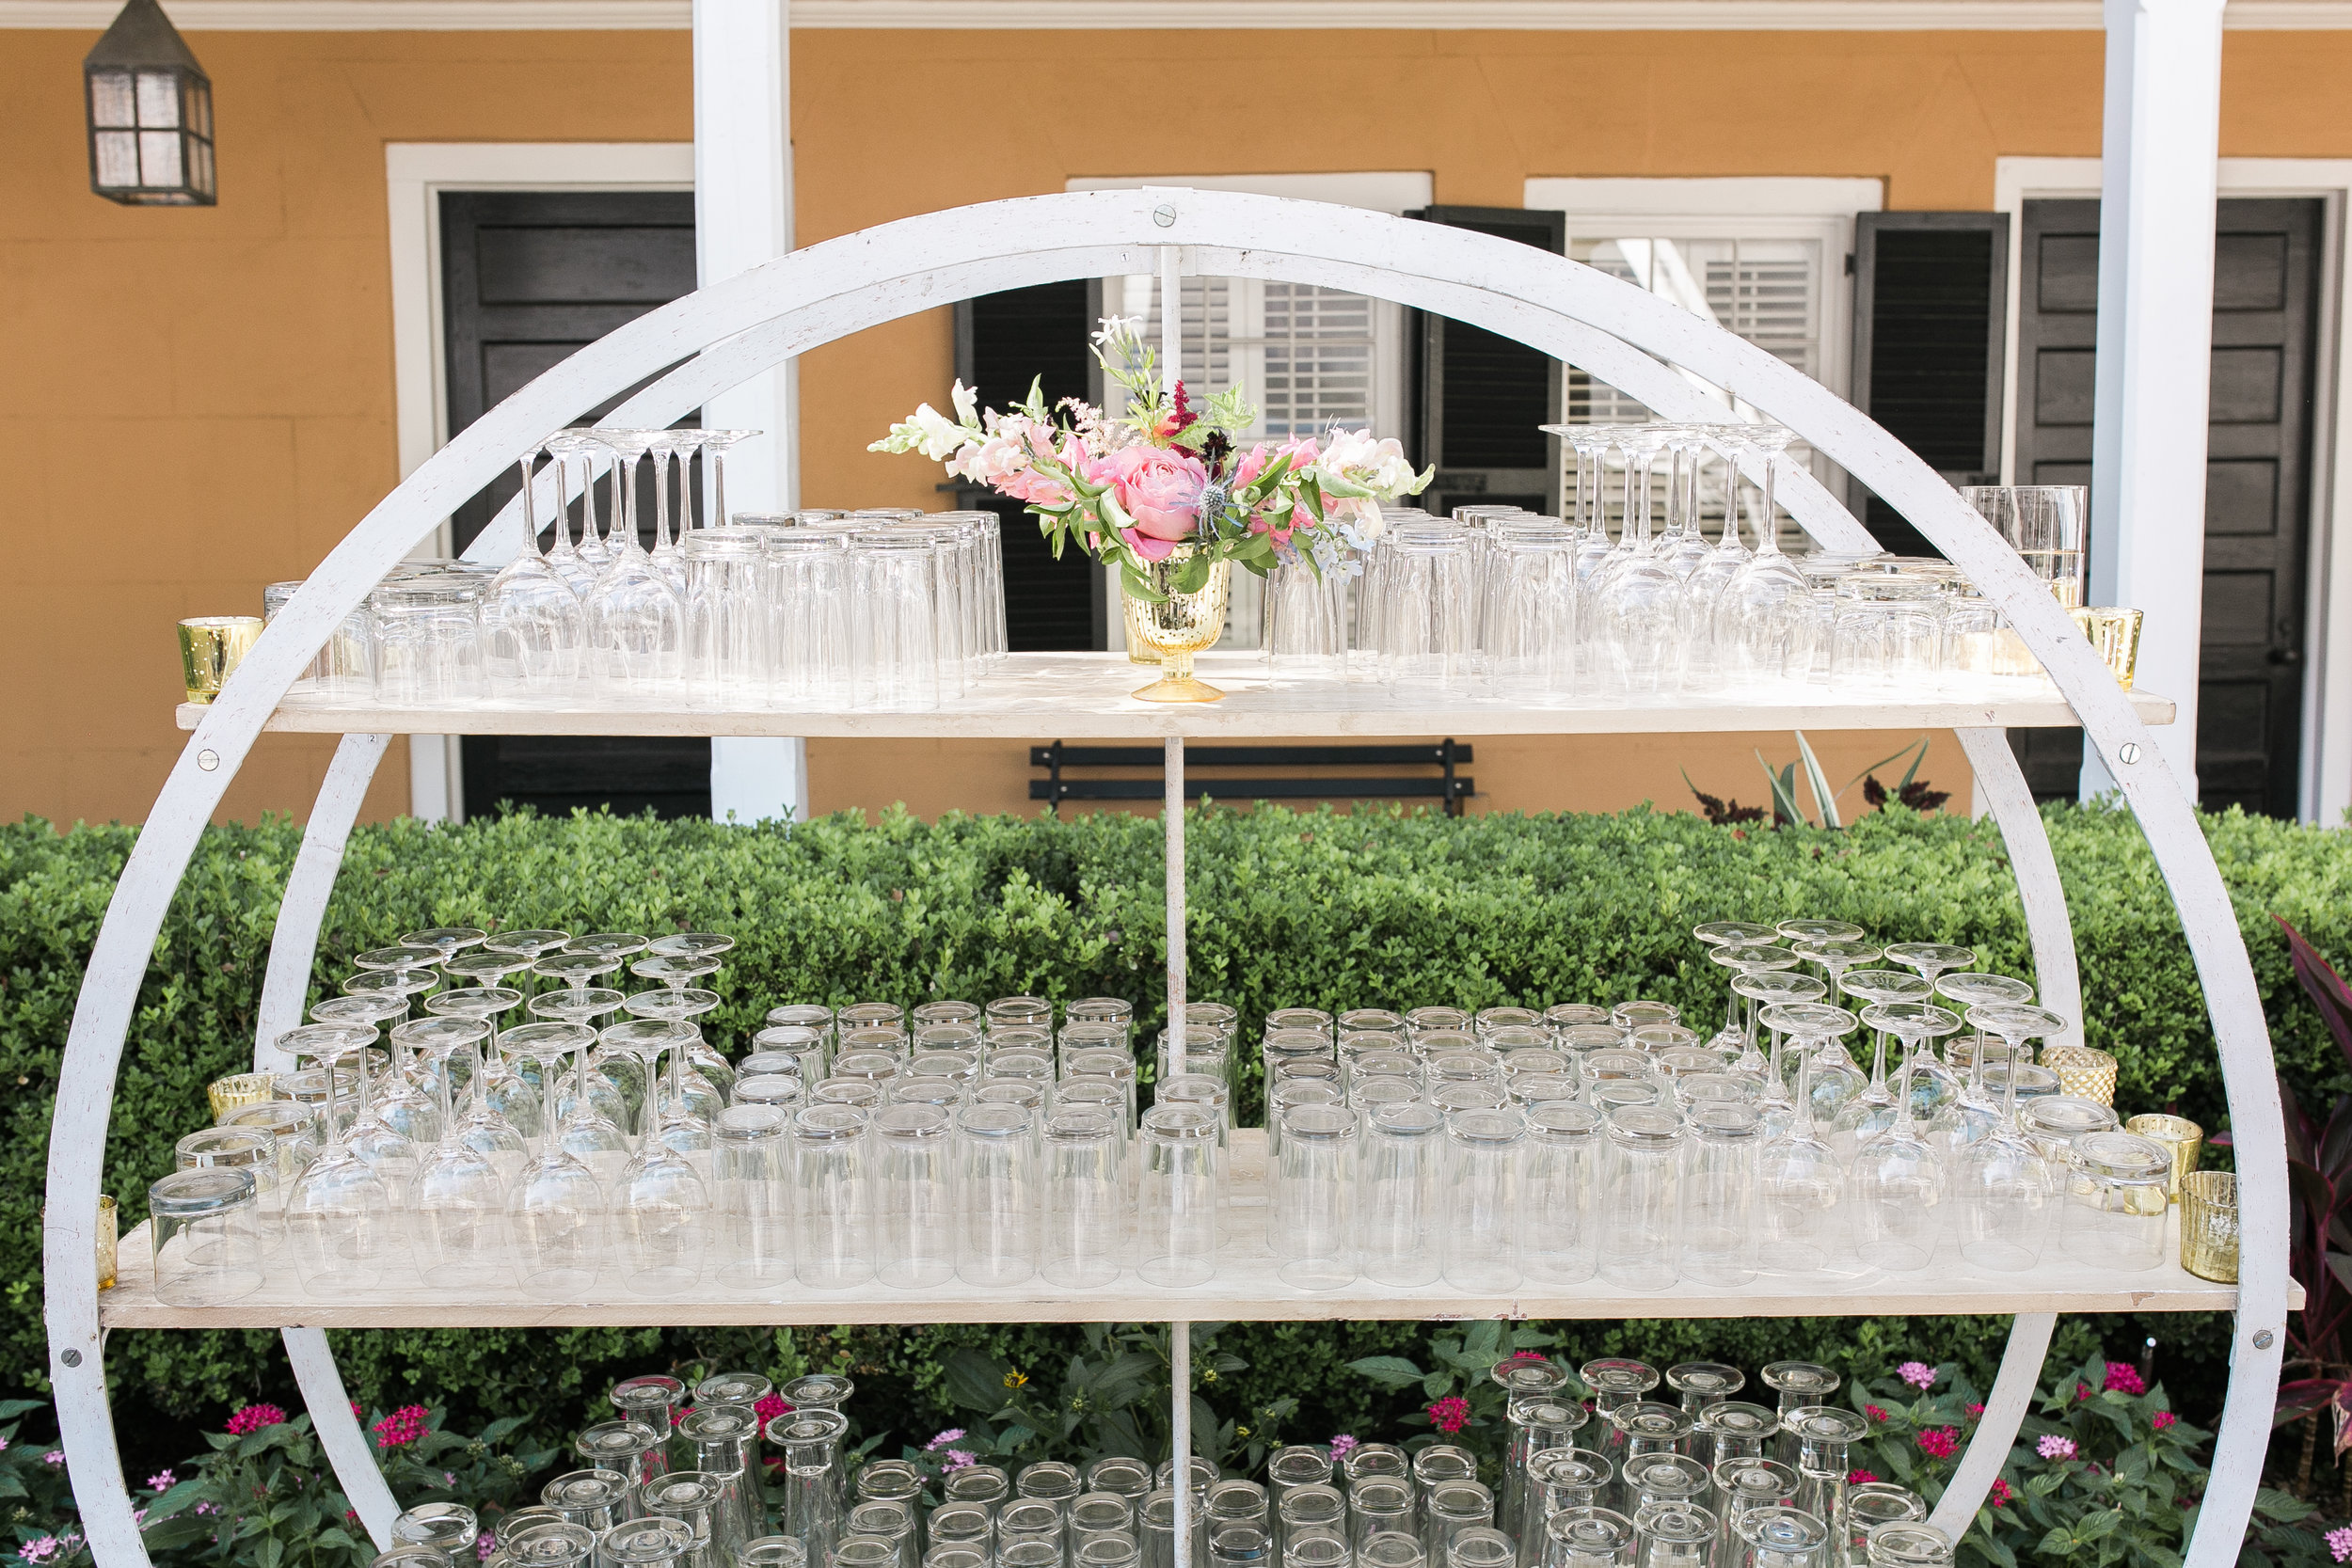 Circular bar setup by Cru Catering at outdoor Thomas Bennett House Reception  Colorful outdoor reception at The Thomas Bennett House wedding in Charleston, SC  //  photographed by Jenna Weddings  Traditional wedding ceremony at Cathedral of St. John the Baptist in Charleston, SC  //  A Lowcountry Wedding Magazine & Blog